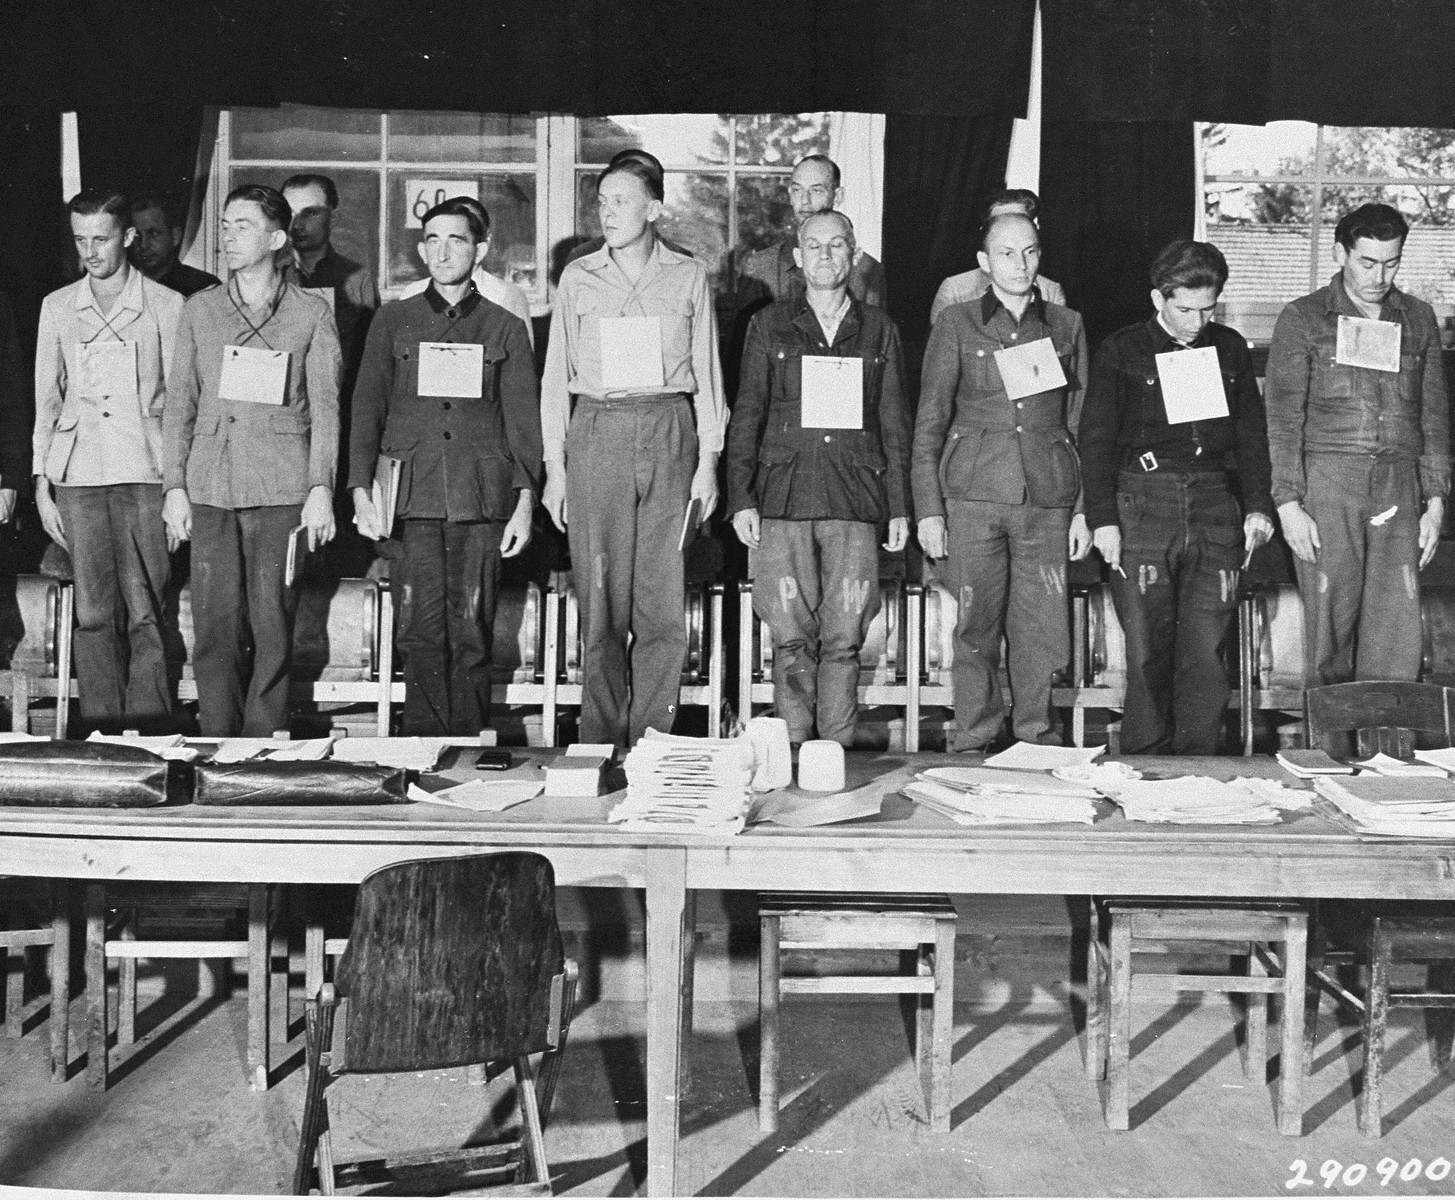 Sixteen of the nineteen defendants on trial for war crimes committed during the war at Dora-Mittelbau.